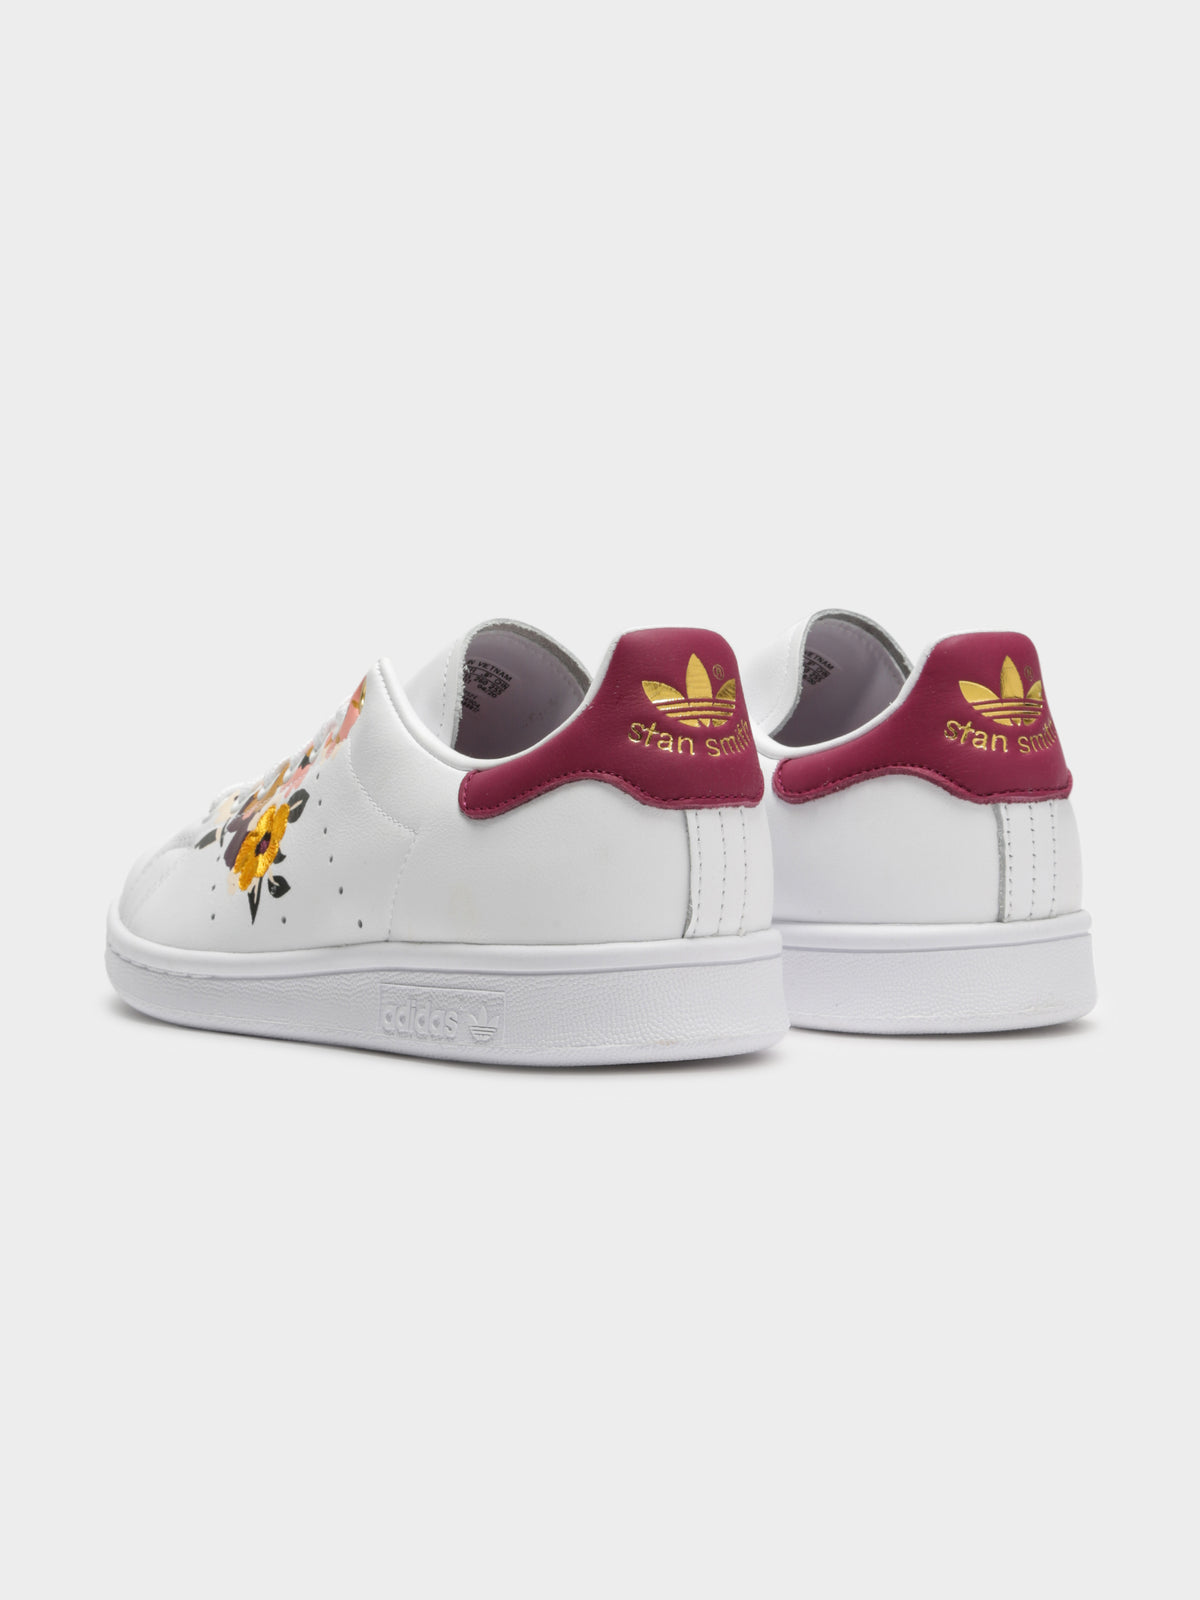 Womens Stan Smith Sneakers in Cloud White / Power Berry / Metallic Gold